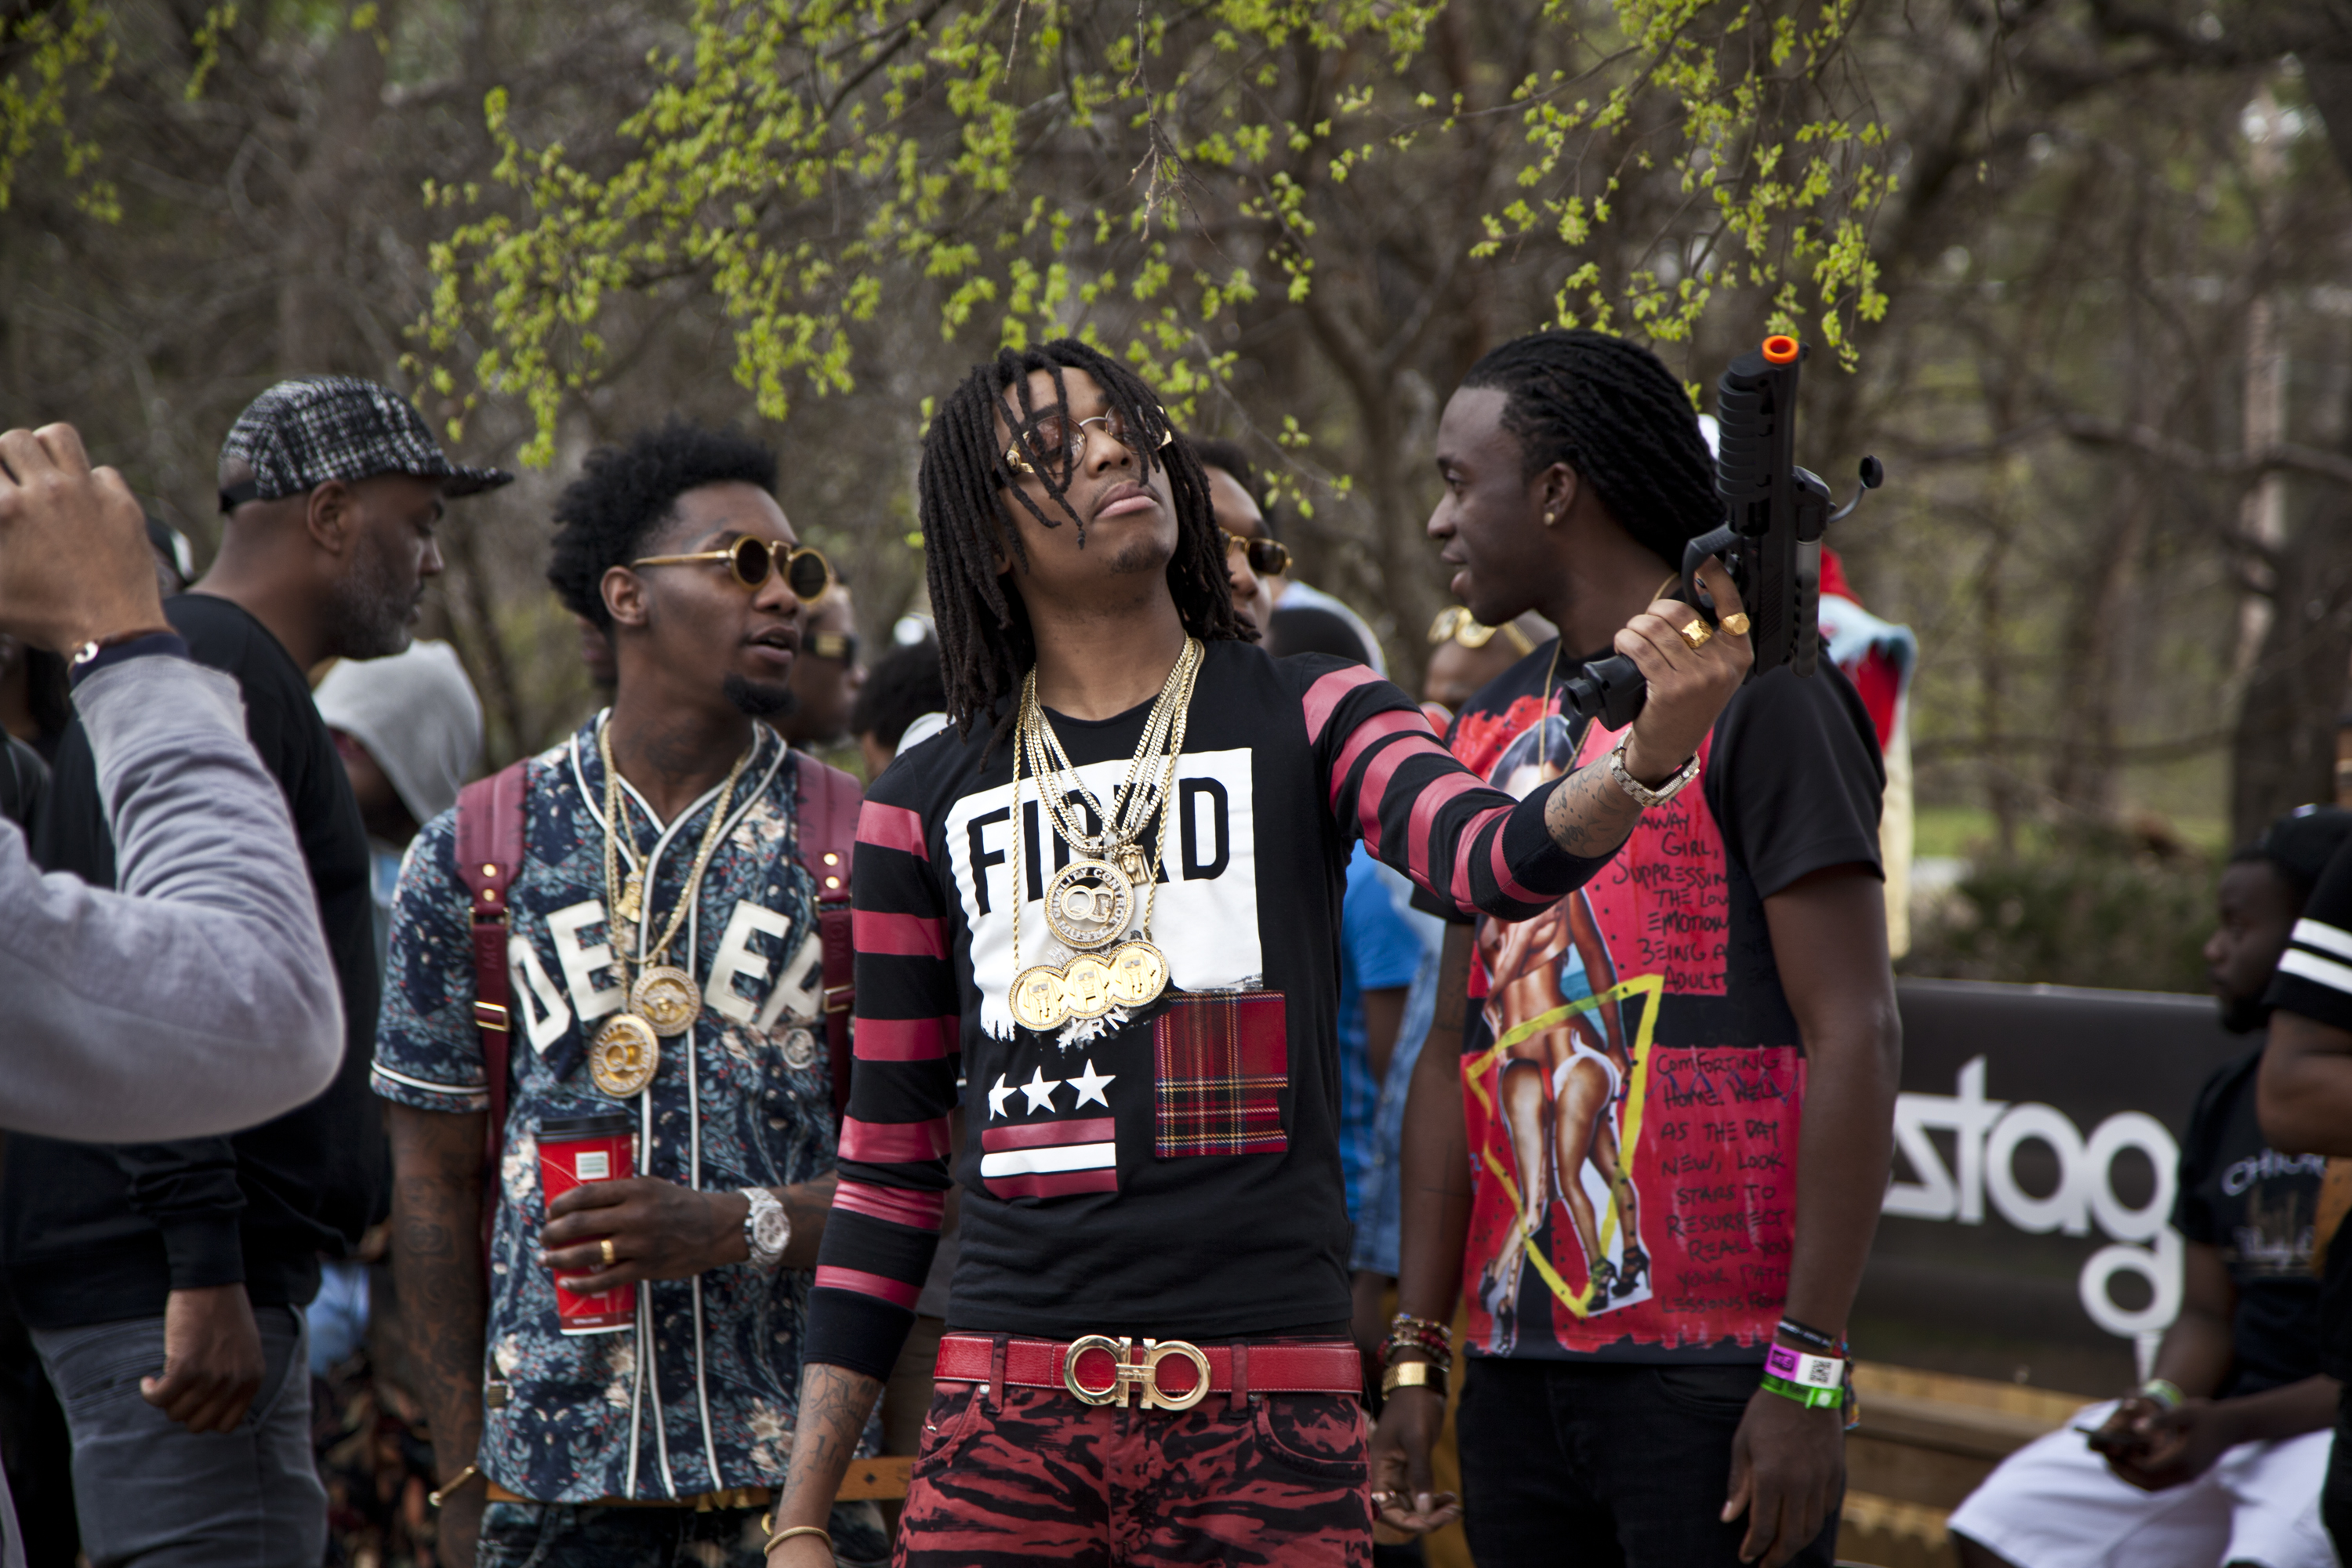 cf0555f35 We Went to a Weird Pool Party with Soulja Boy and Migos - VICE